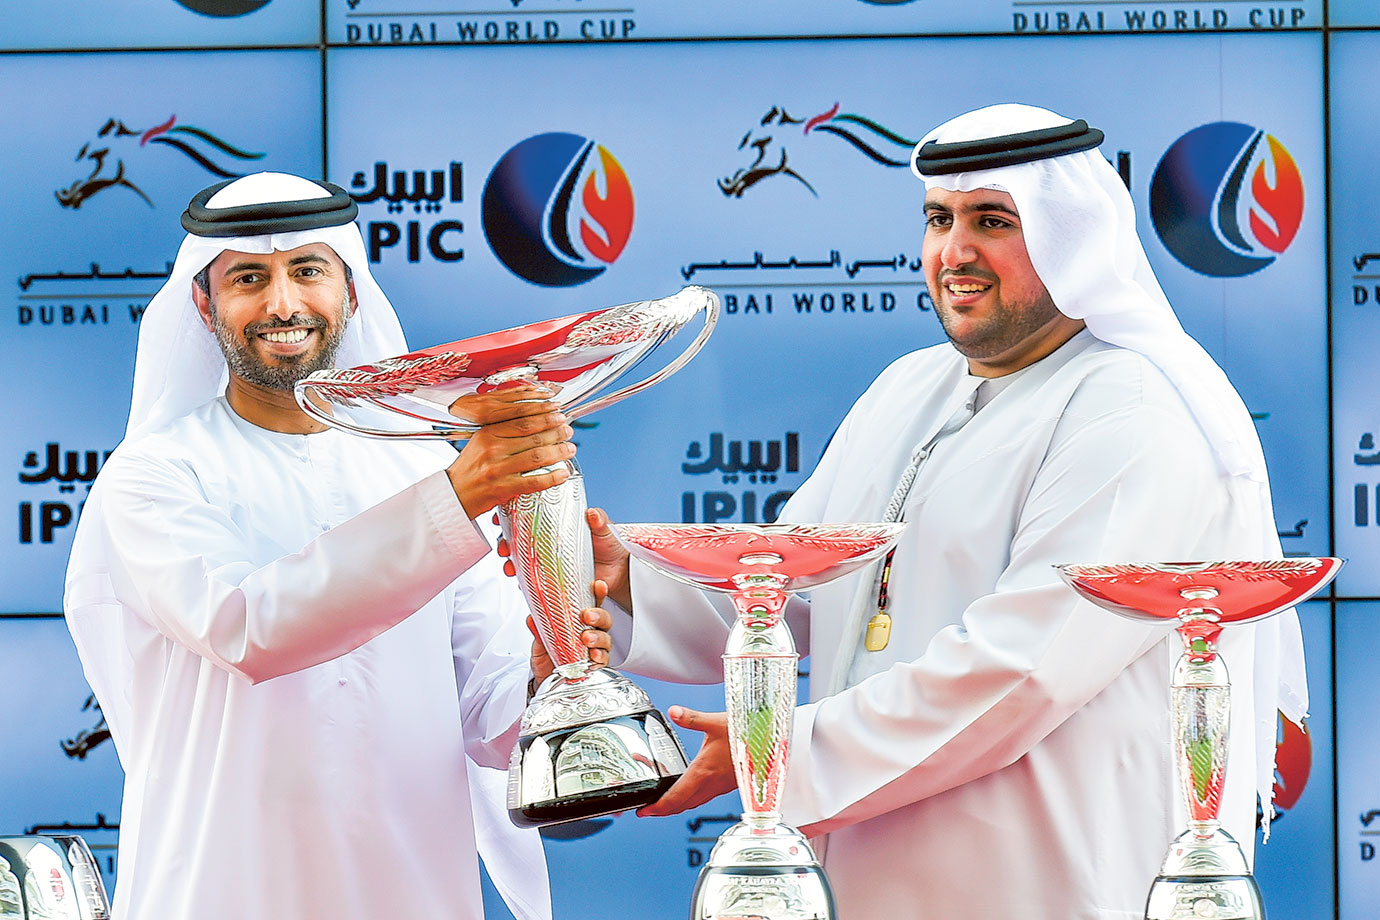 Shaikh Saeed Bin Hamdan Bin Rashid Al Maktoum receives the owner's trophy